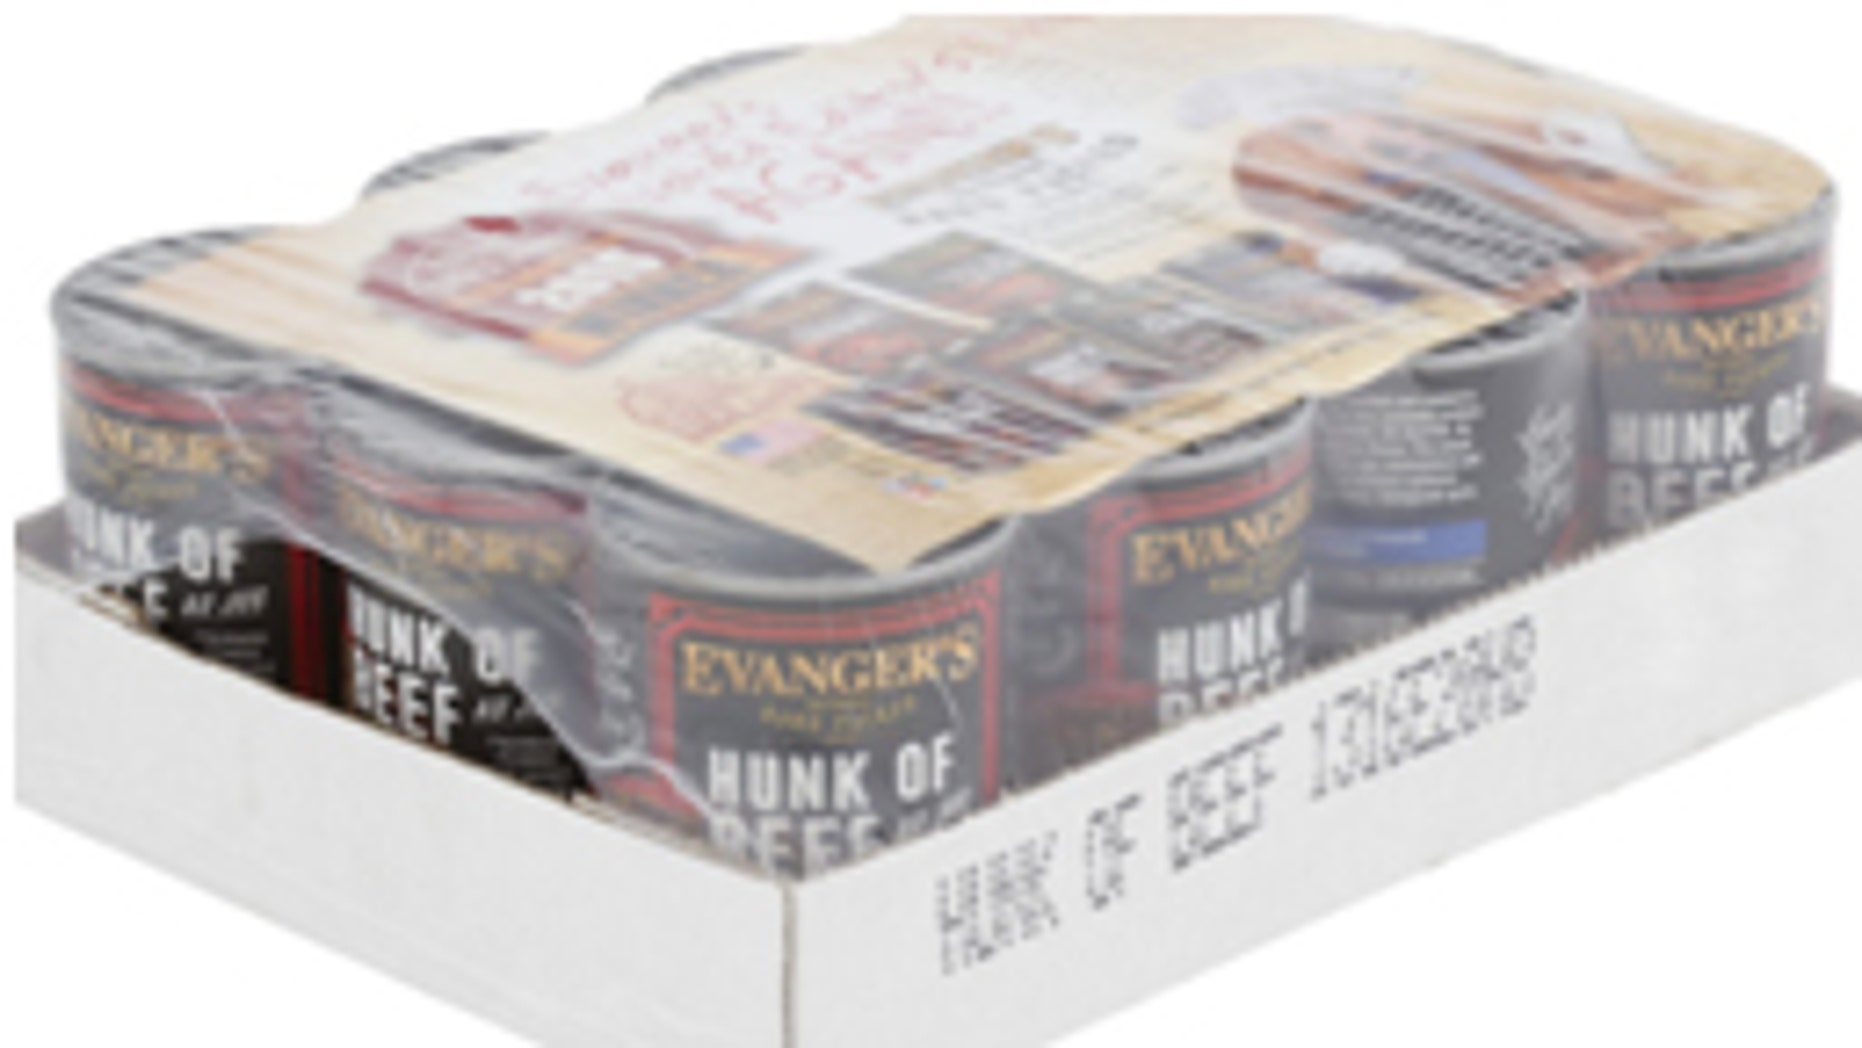 Evanger's Hunk of Beef product has been voluntarily recalled.